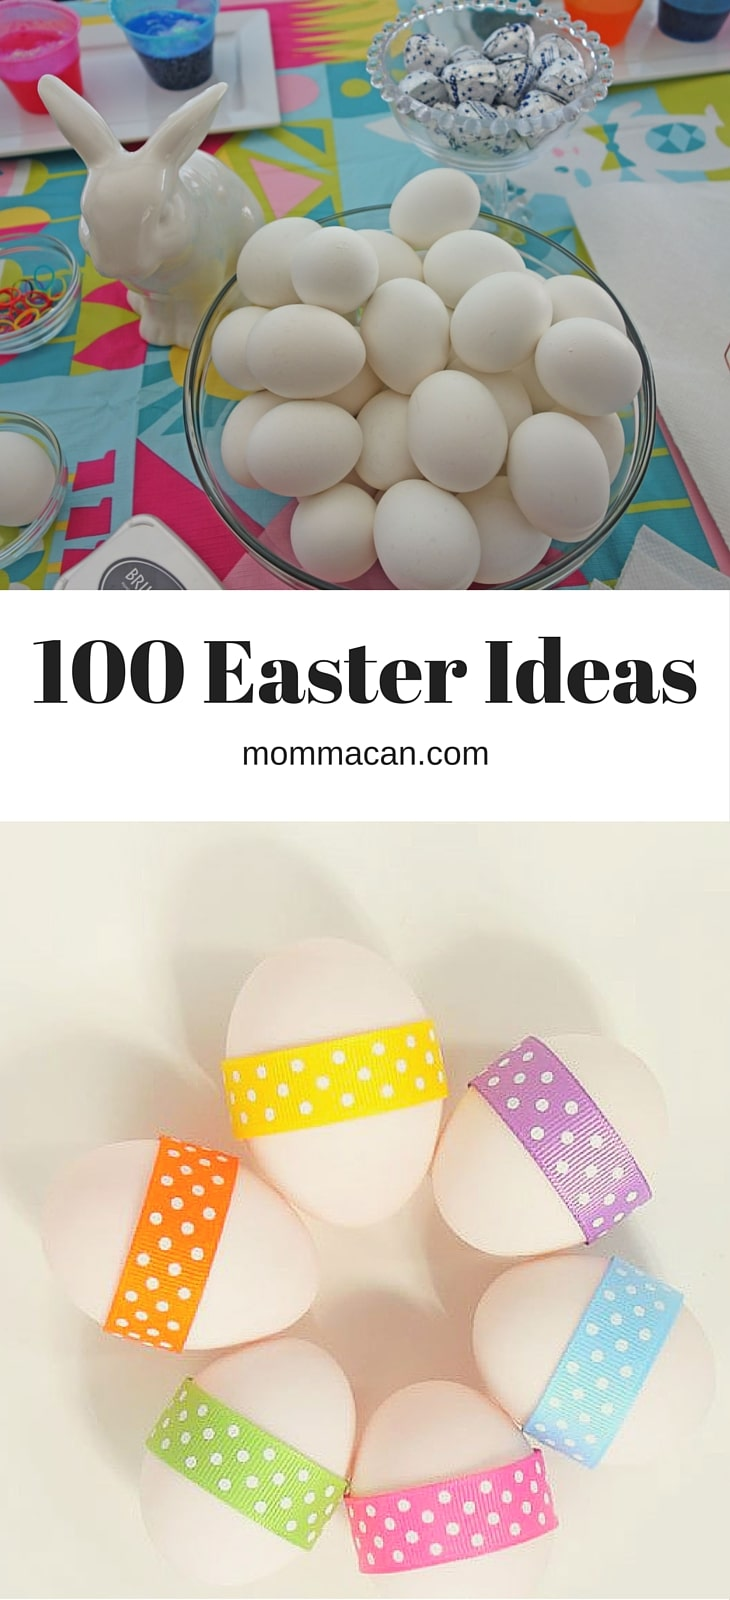 100 Easter Ideas - mommacan.com